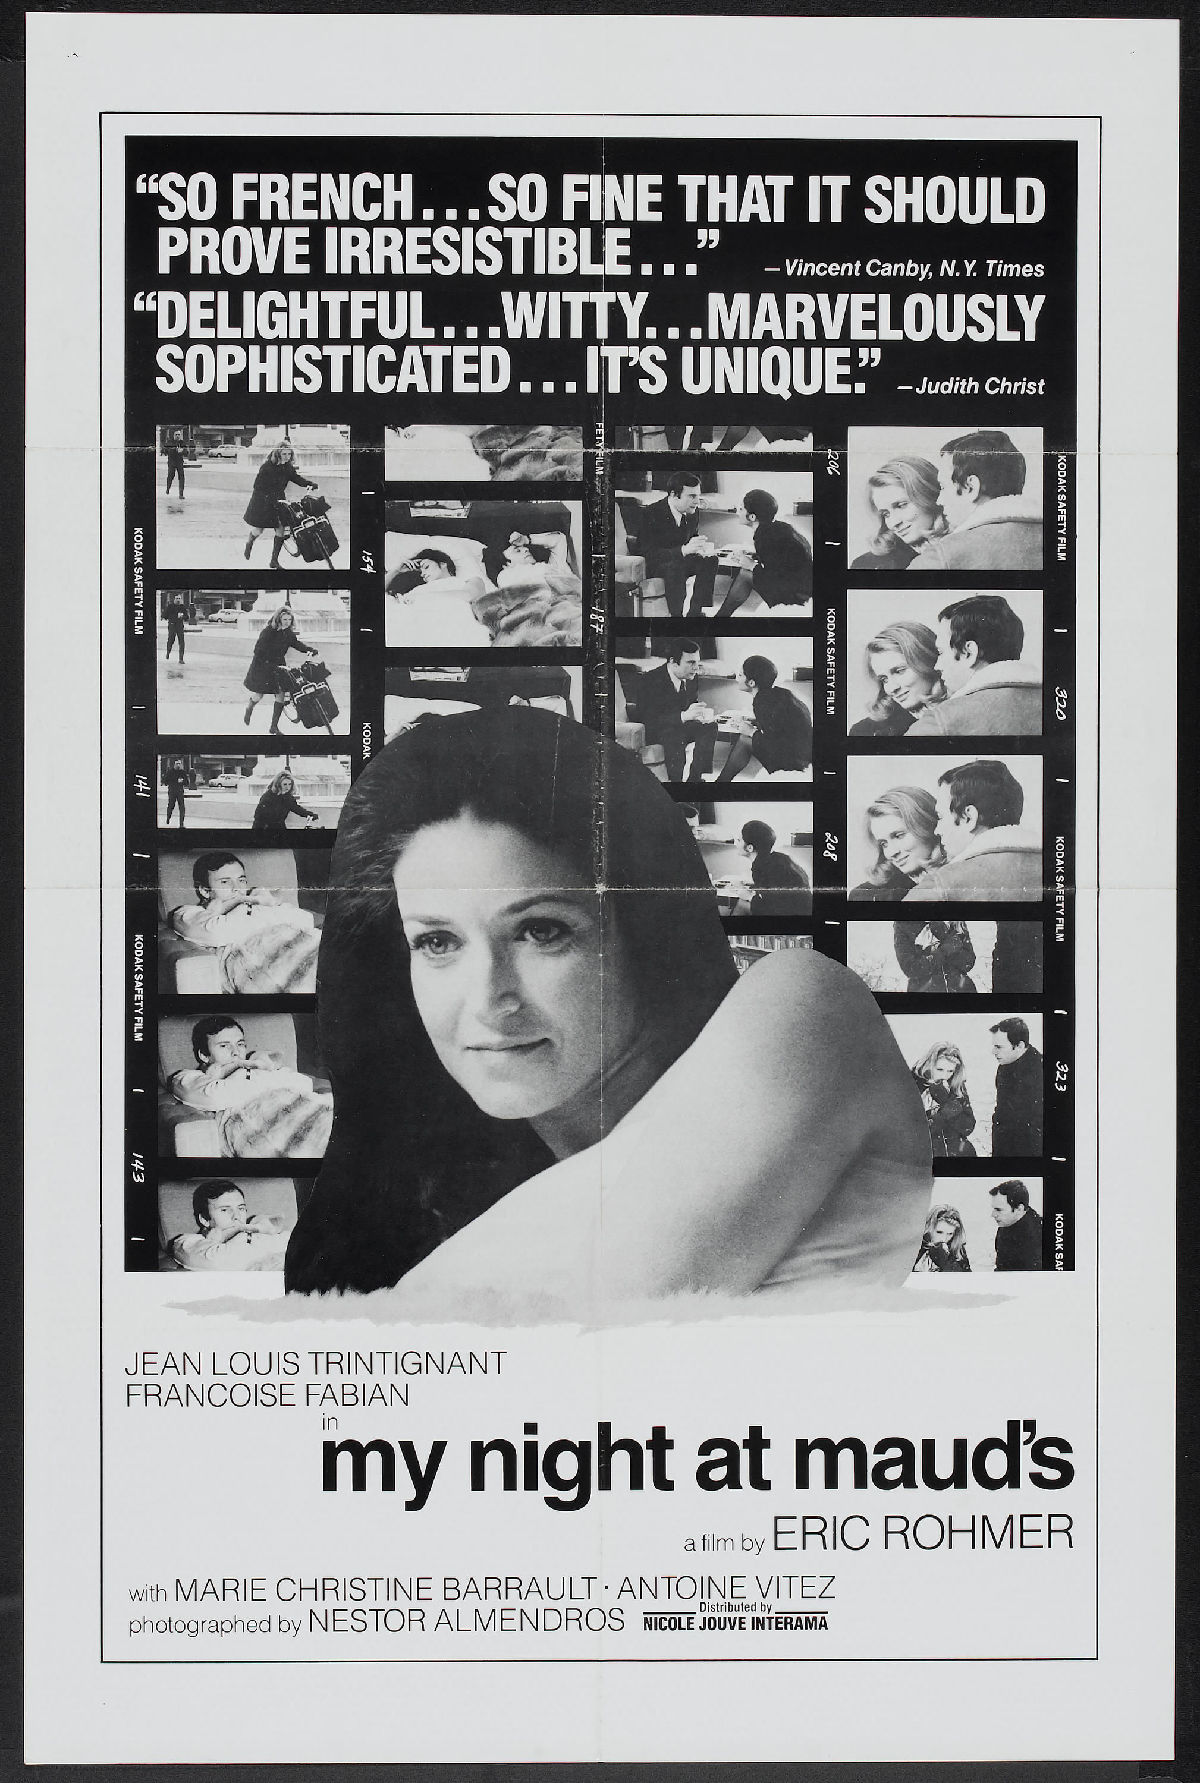 'My Night At Maud's (Ma nuit chez Maud)' movie poster